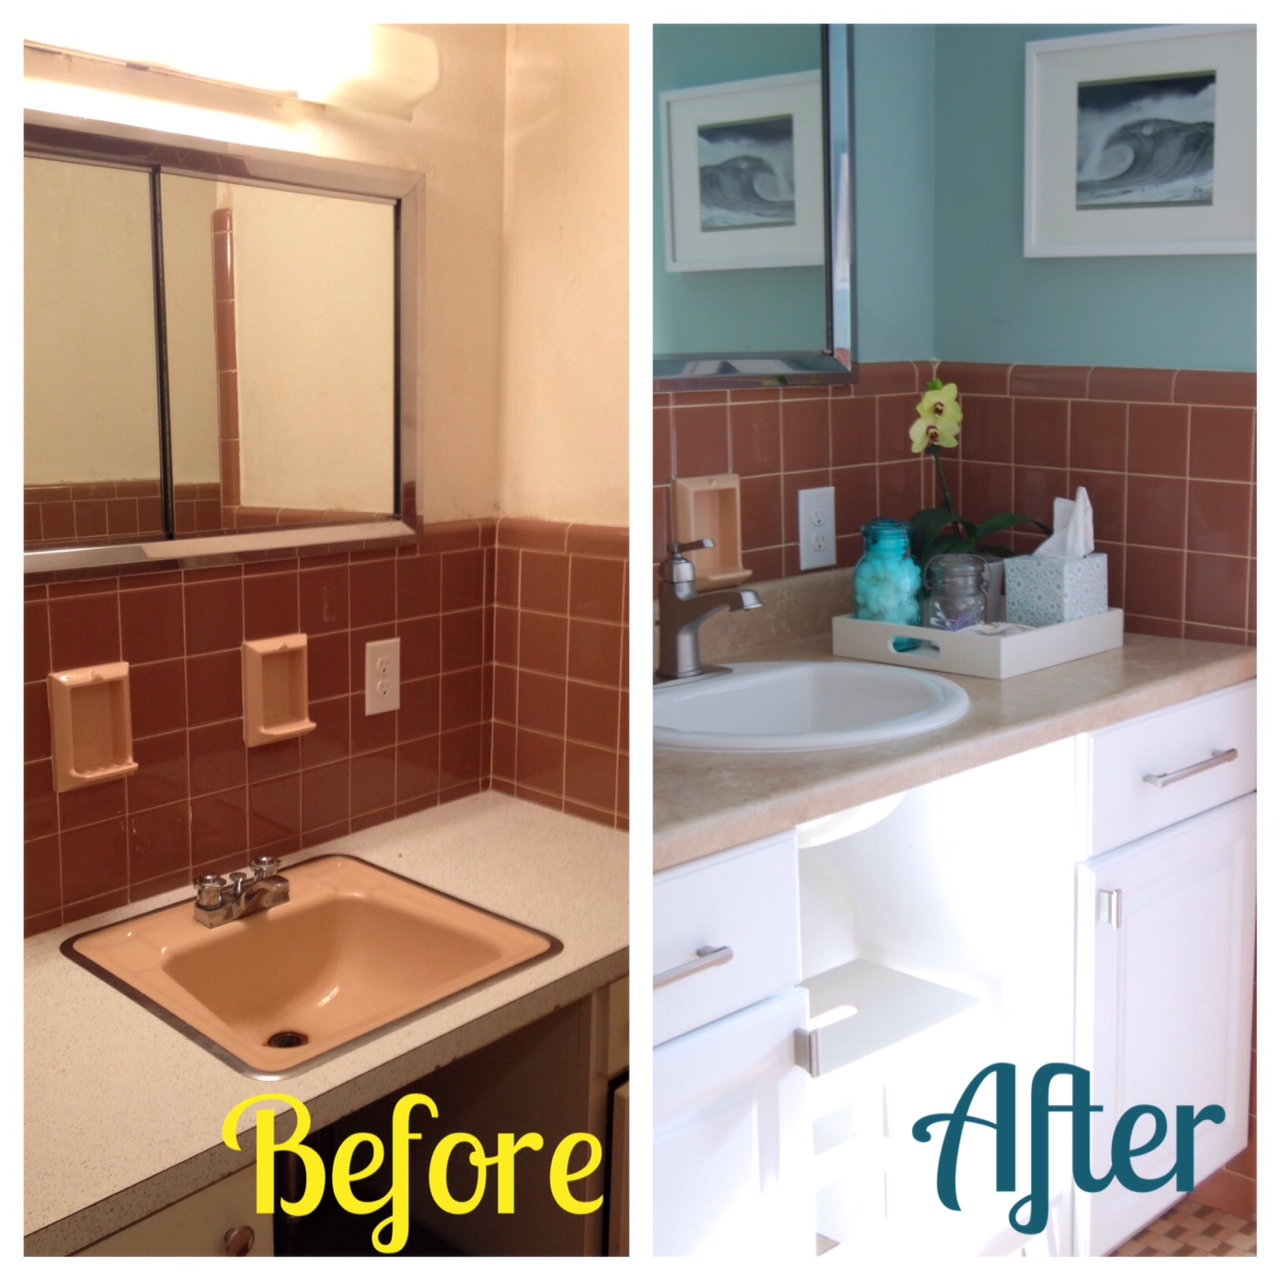 Bathroom Renovation Orange County: Orangecountyfamily